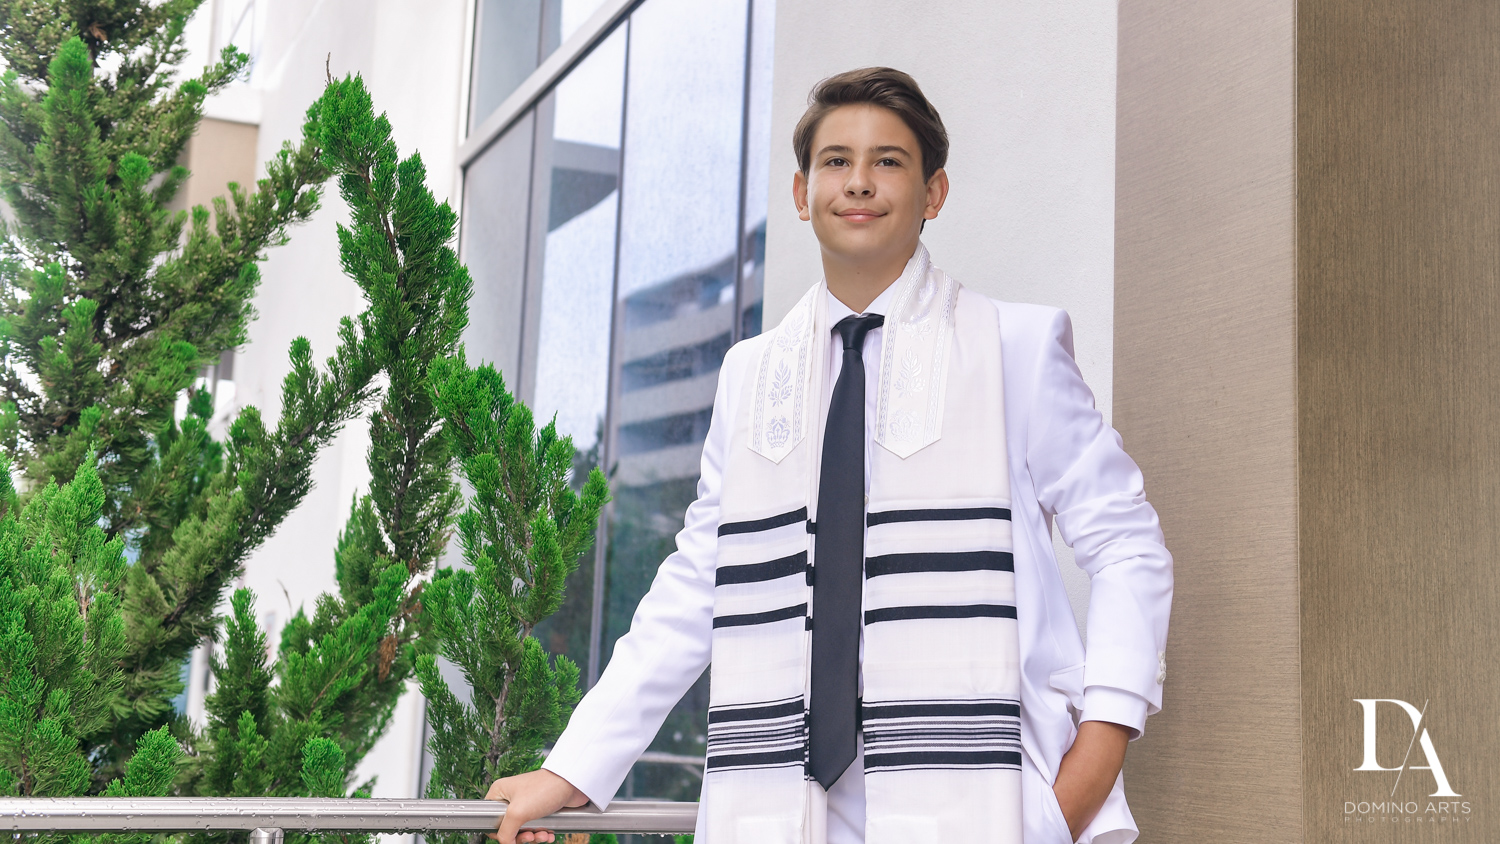 Monochrome Bar Mitzvah Ceremony at Aventura Chabad by Domino Arts Photography